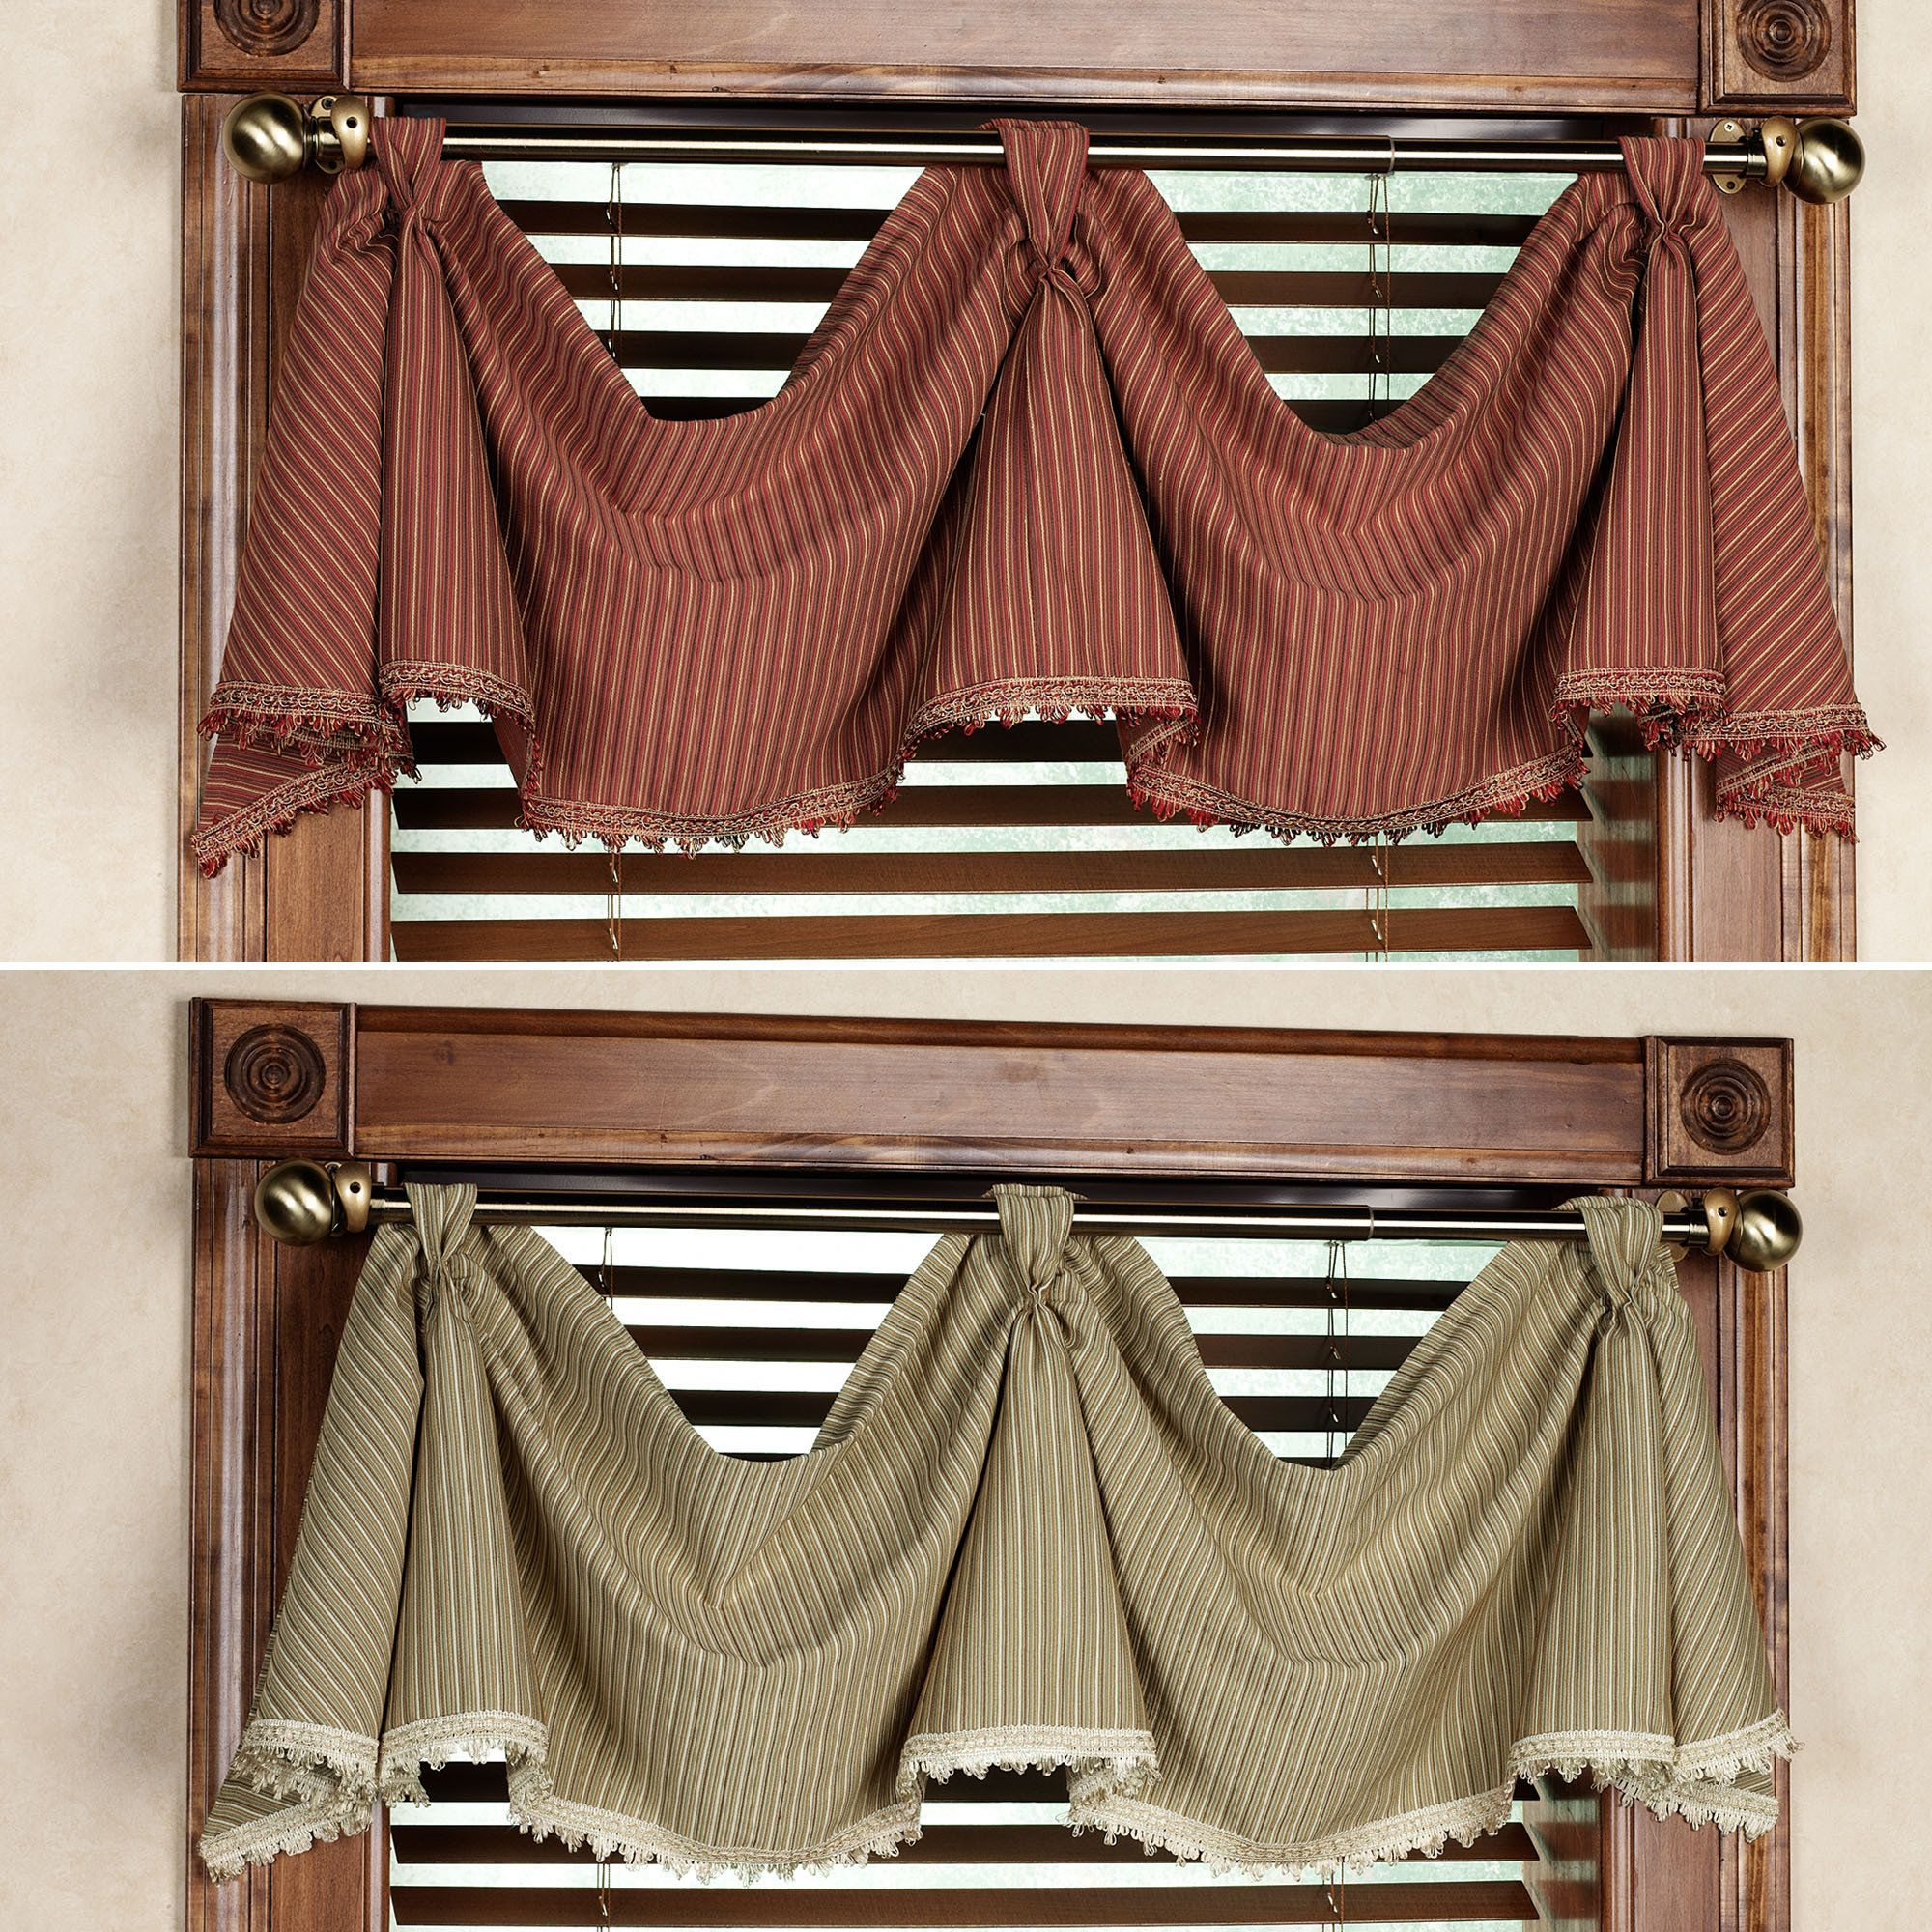 Valance, Curtains And Laundry